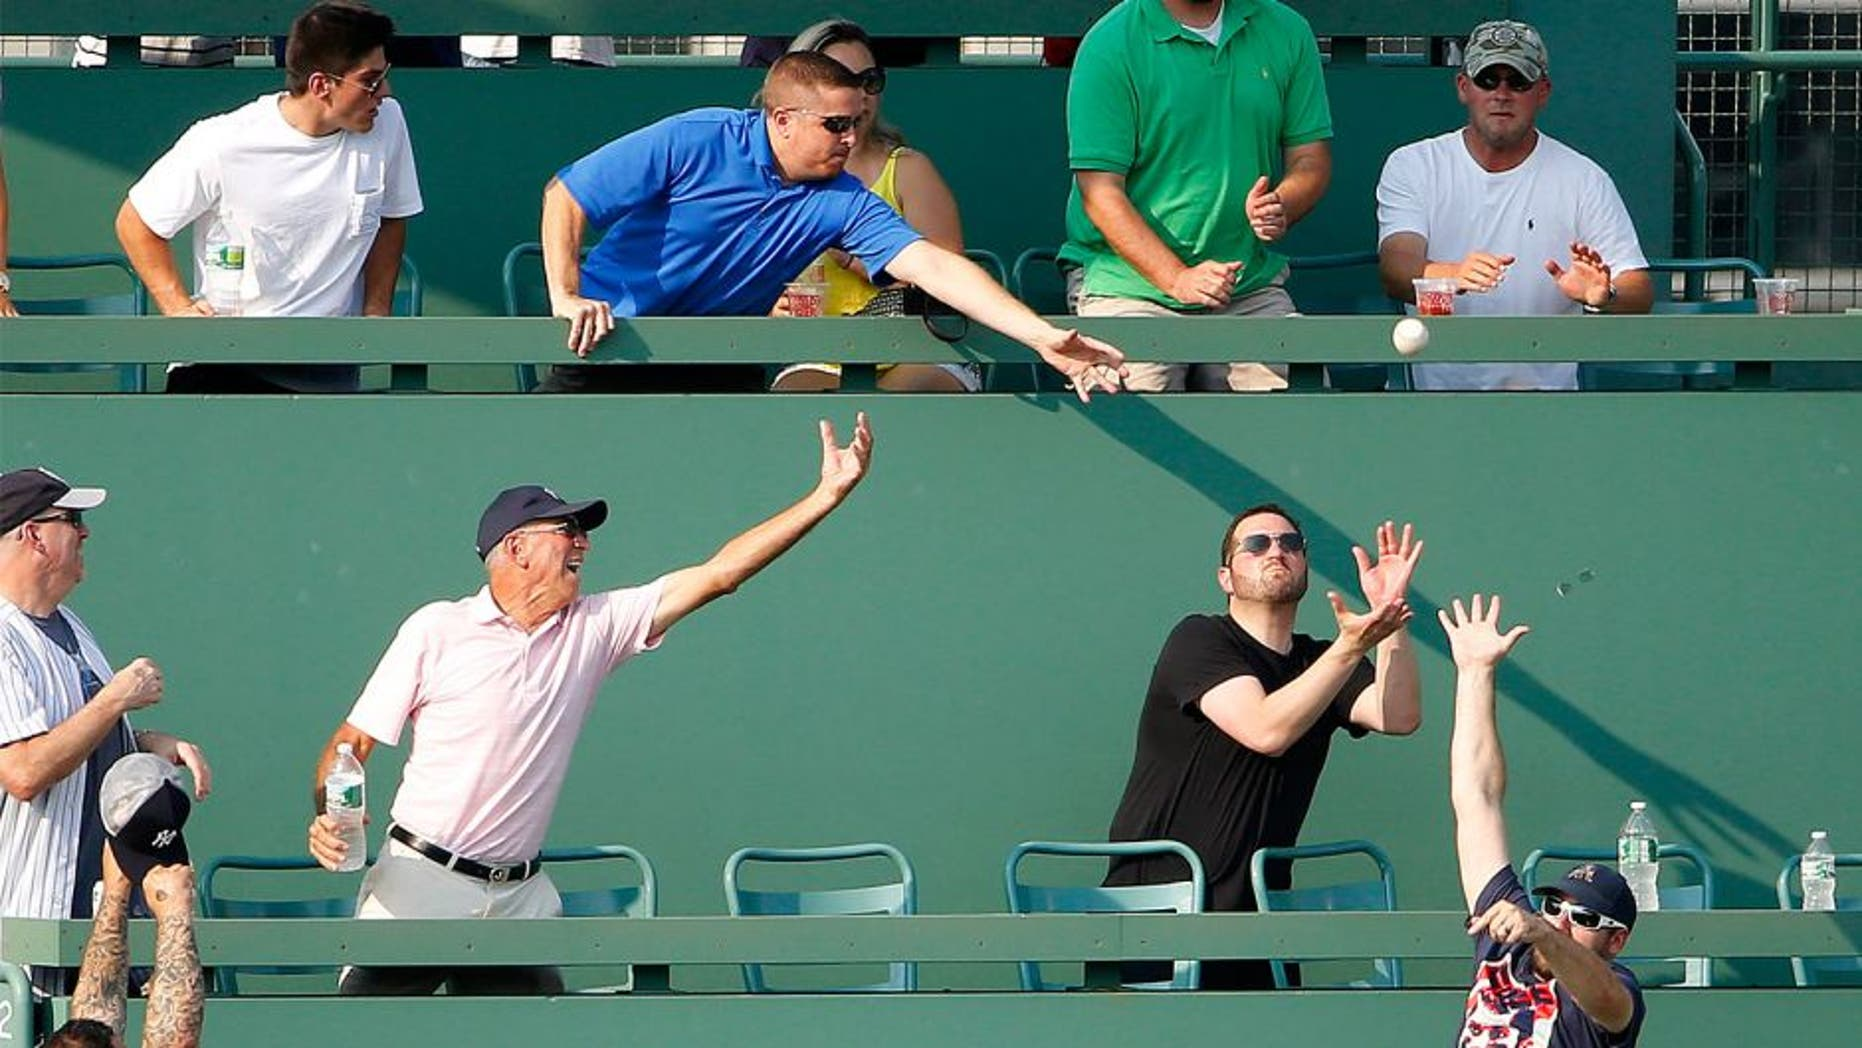 Fans in the Monster Seats go for a home run ball hit by New York Yankees' John Ryan Murphy during the second inning of a baseball game against the Boston Red Sox at Fenway Park in Boston Wednesday, Sept. 2, 2015. (AP Photo/Winslow Townson)